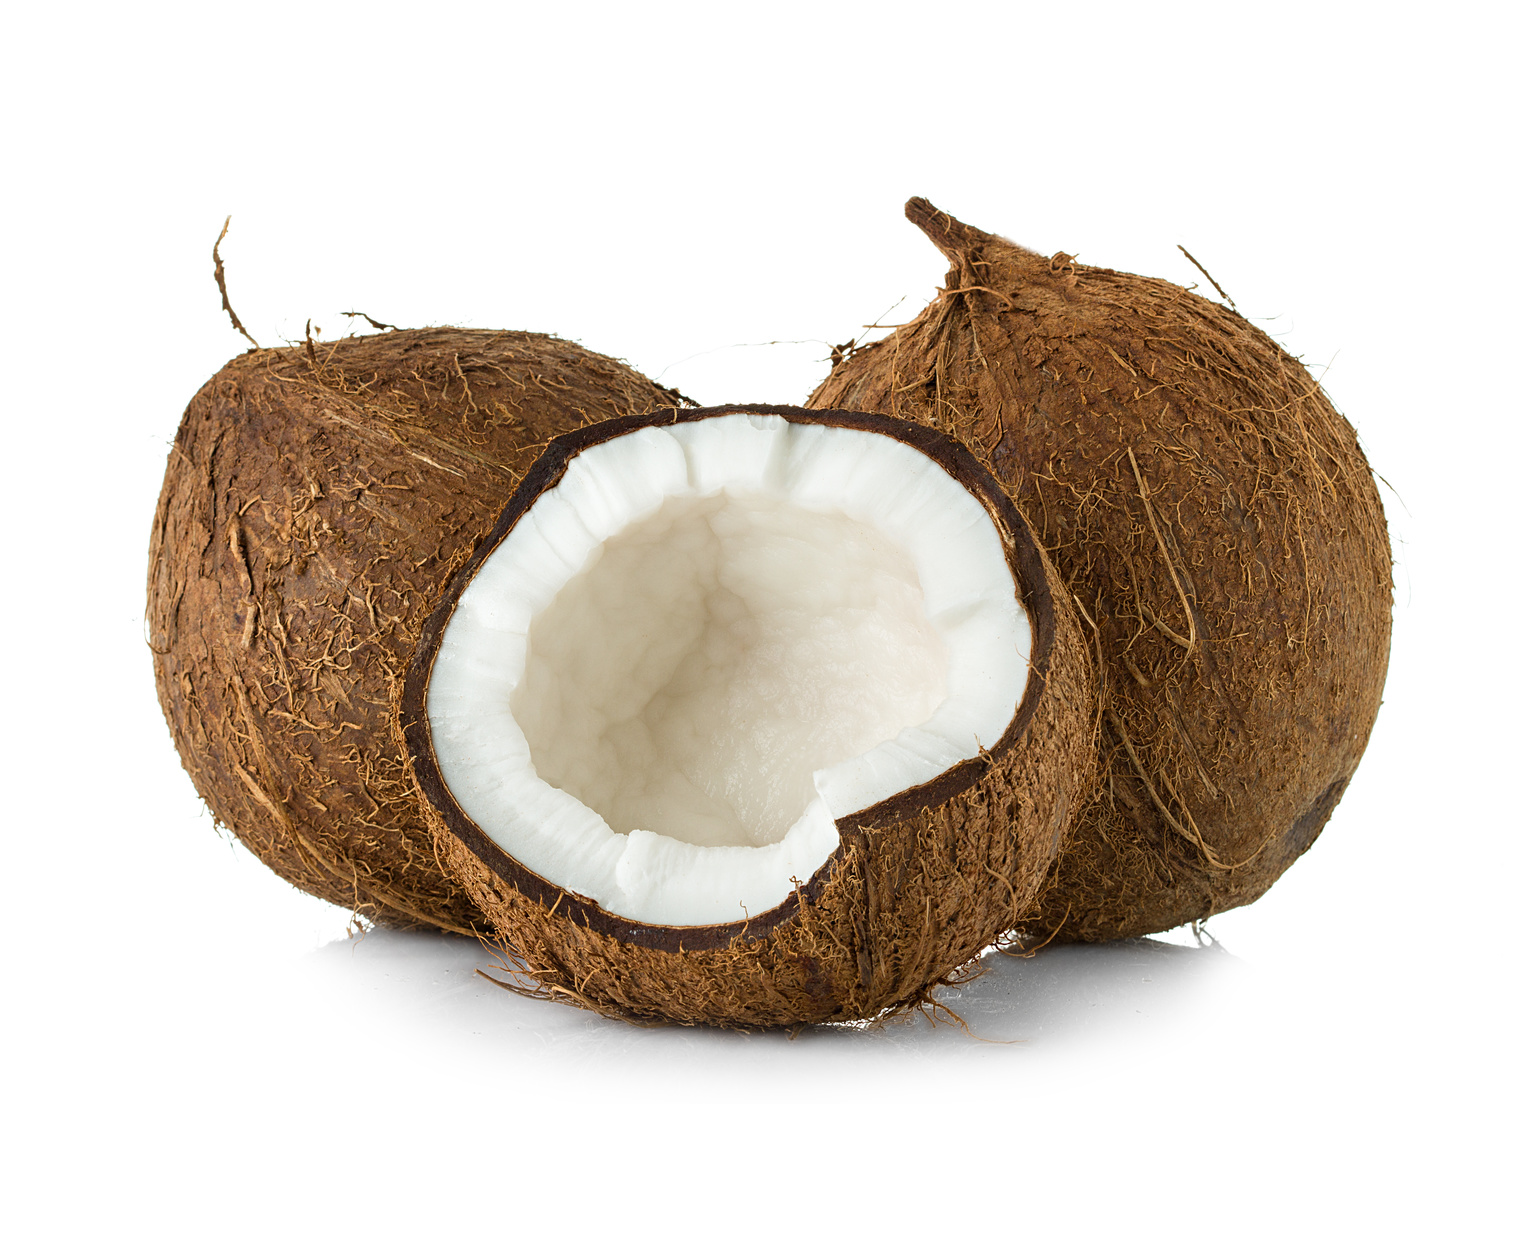 how to drink coconut oil for thyroid